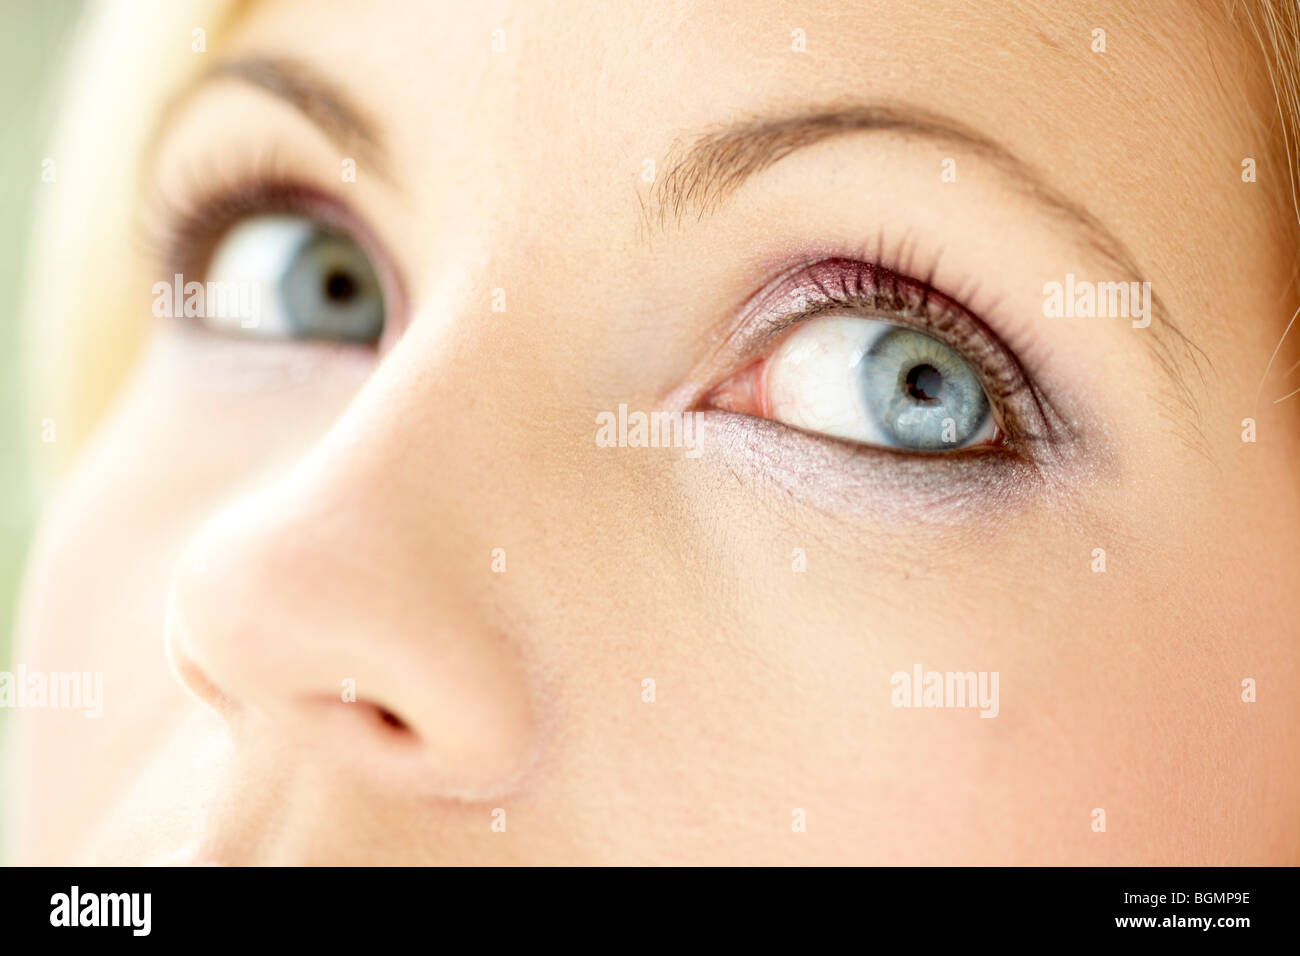 Close up of womans eyes - Stock Image